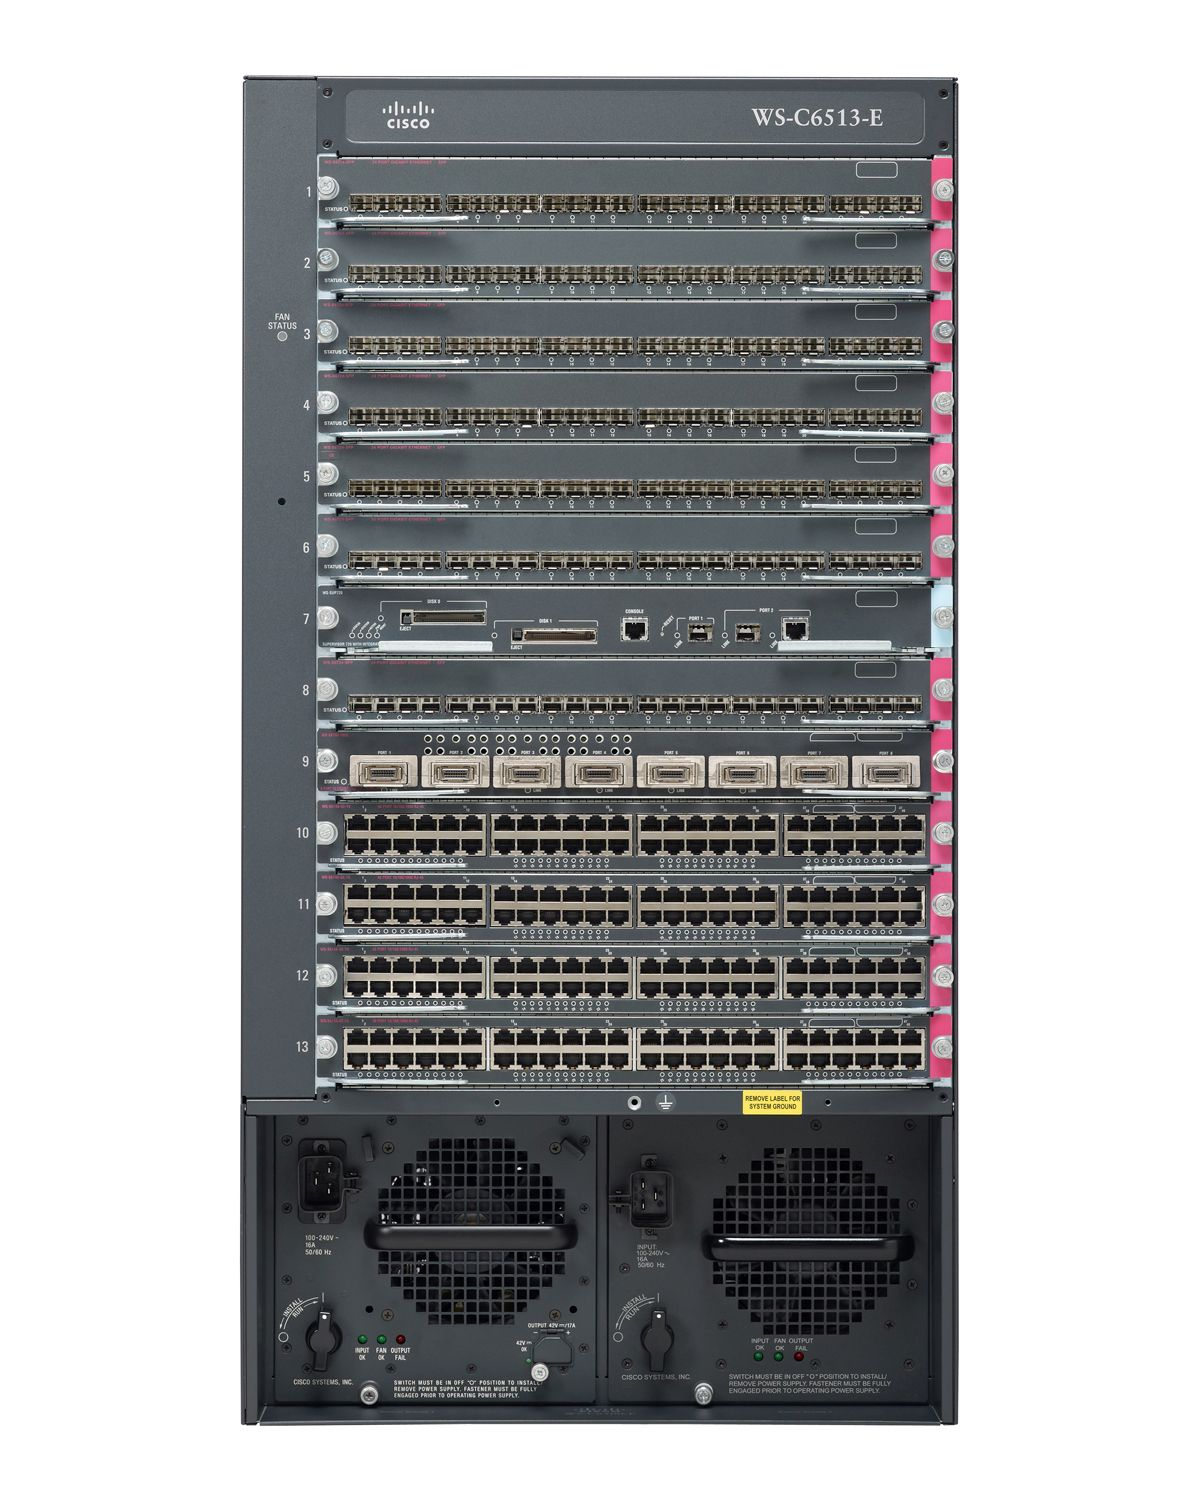 Ws C6513 E 6500 Series Chassis 6500 Series Switches